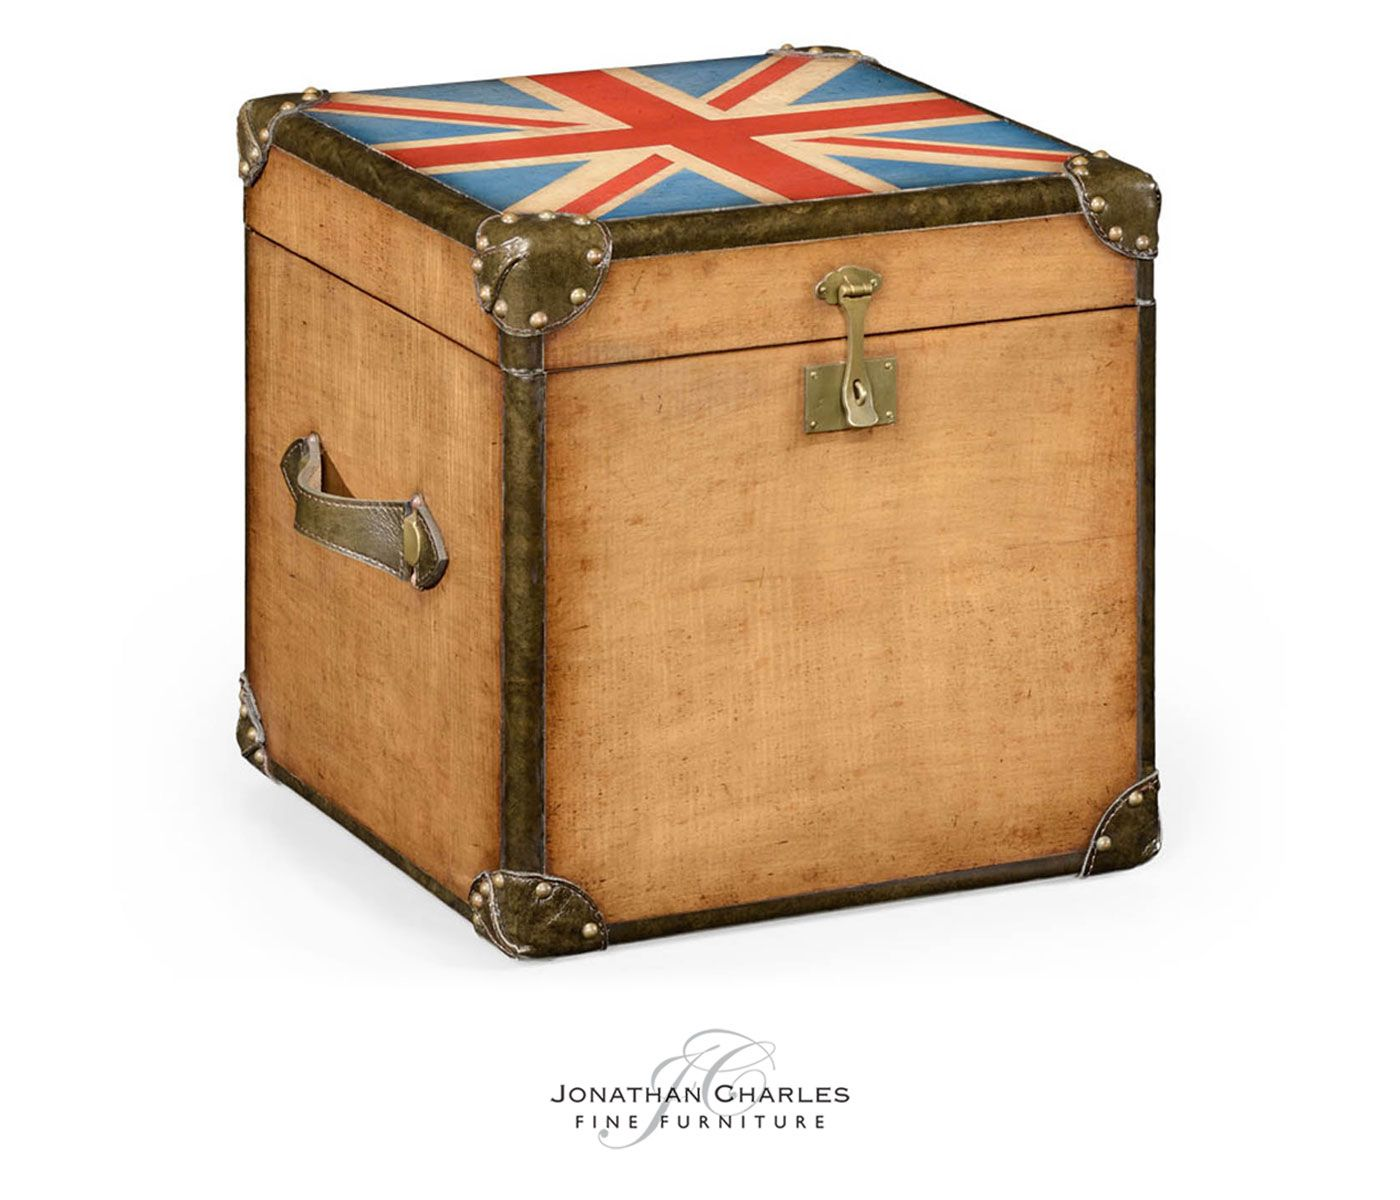 Union Jack square trunk  #hpmkt #jcfurniture #jonathancharles #Furniture #InteriorDesign #decorex #unionjack